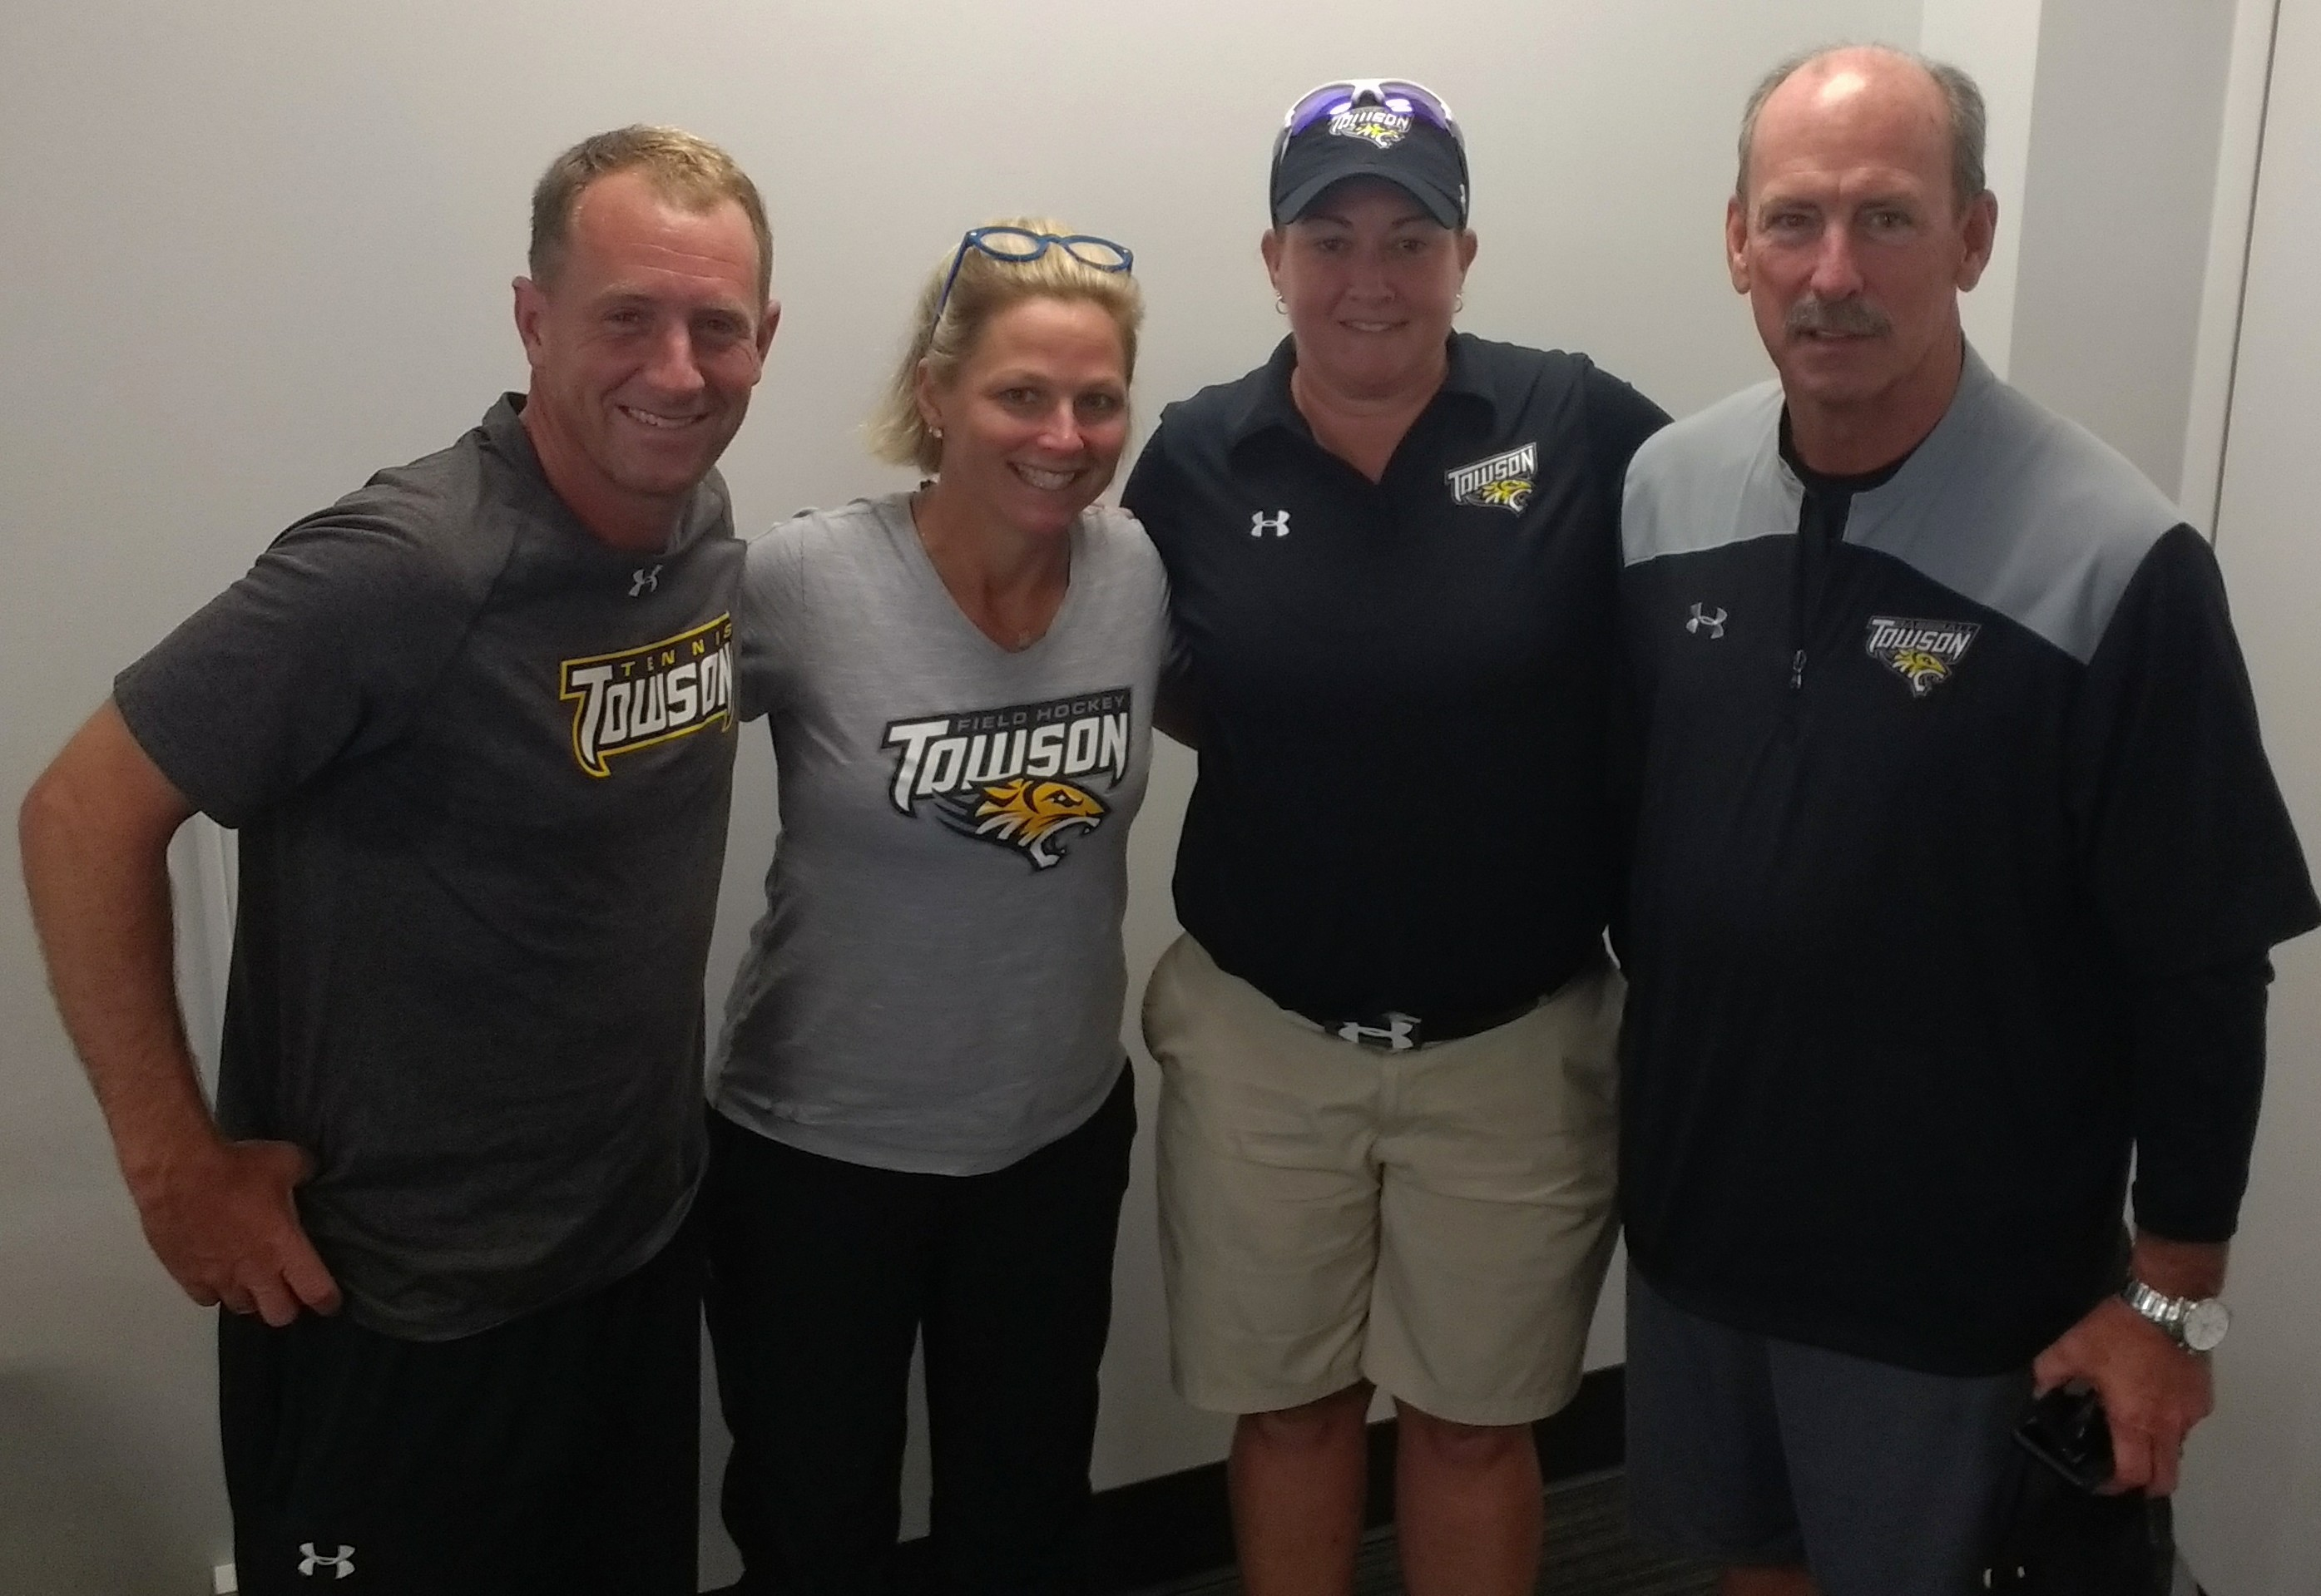 Peterson (left) with fellow first-year coaches at Towson.